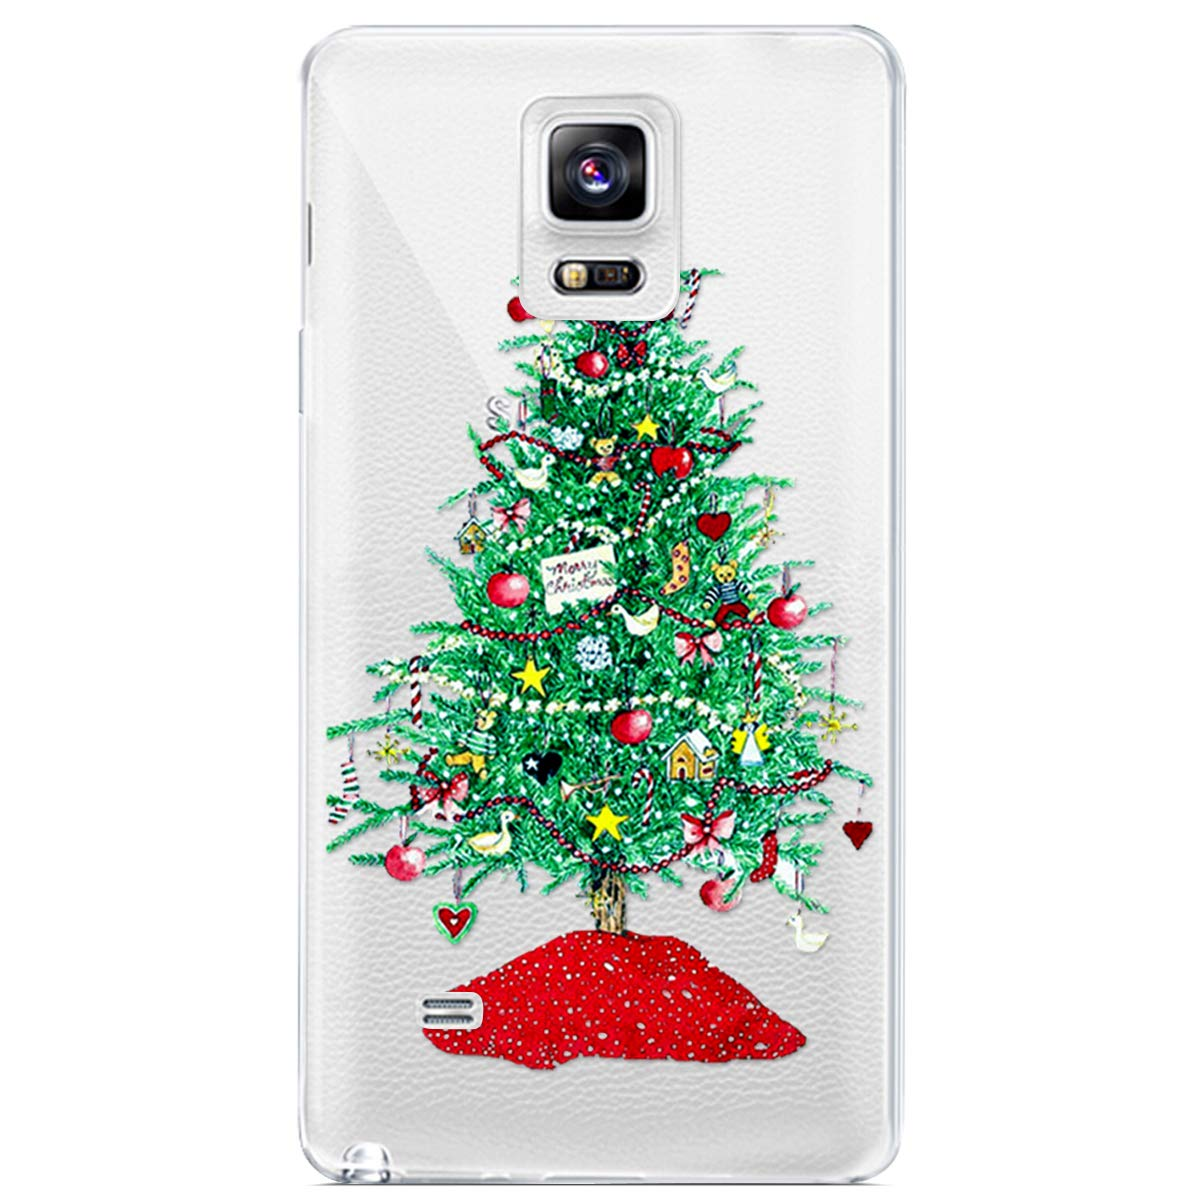 MoreChioce Coque Galaxy Note 4,Coque Galaxy Note 4 Transparente, Noël Silicone Anti-Rayures Flexible Gel Souple TPU Case Bumper,Premium Arbre Noël Vert Motif Christmas pour Galaxy Note 4